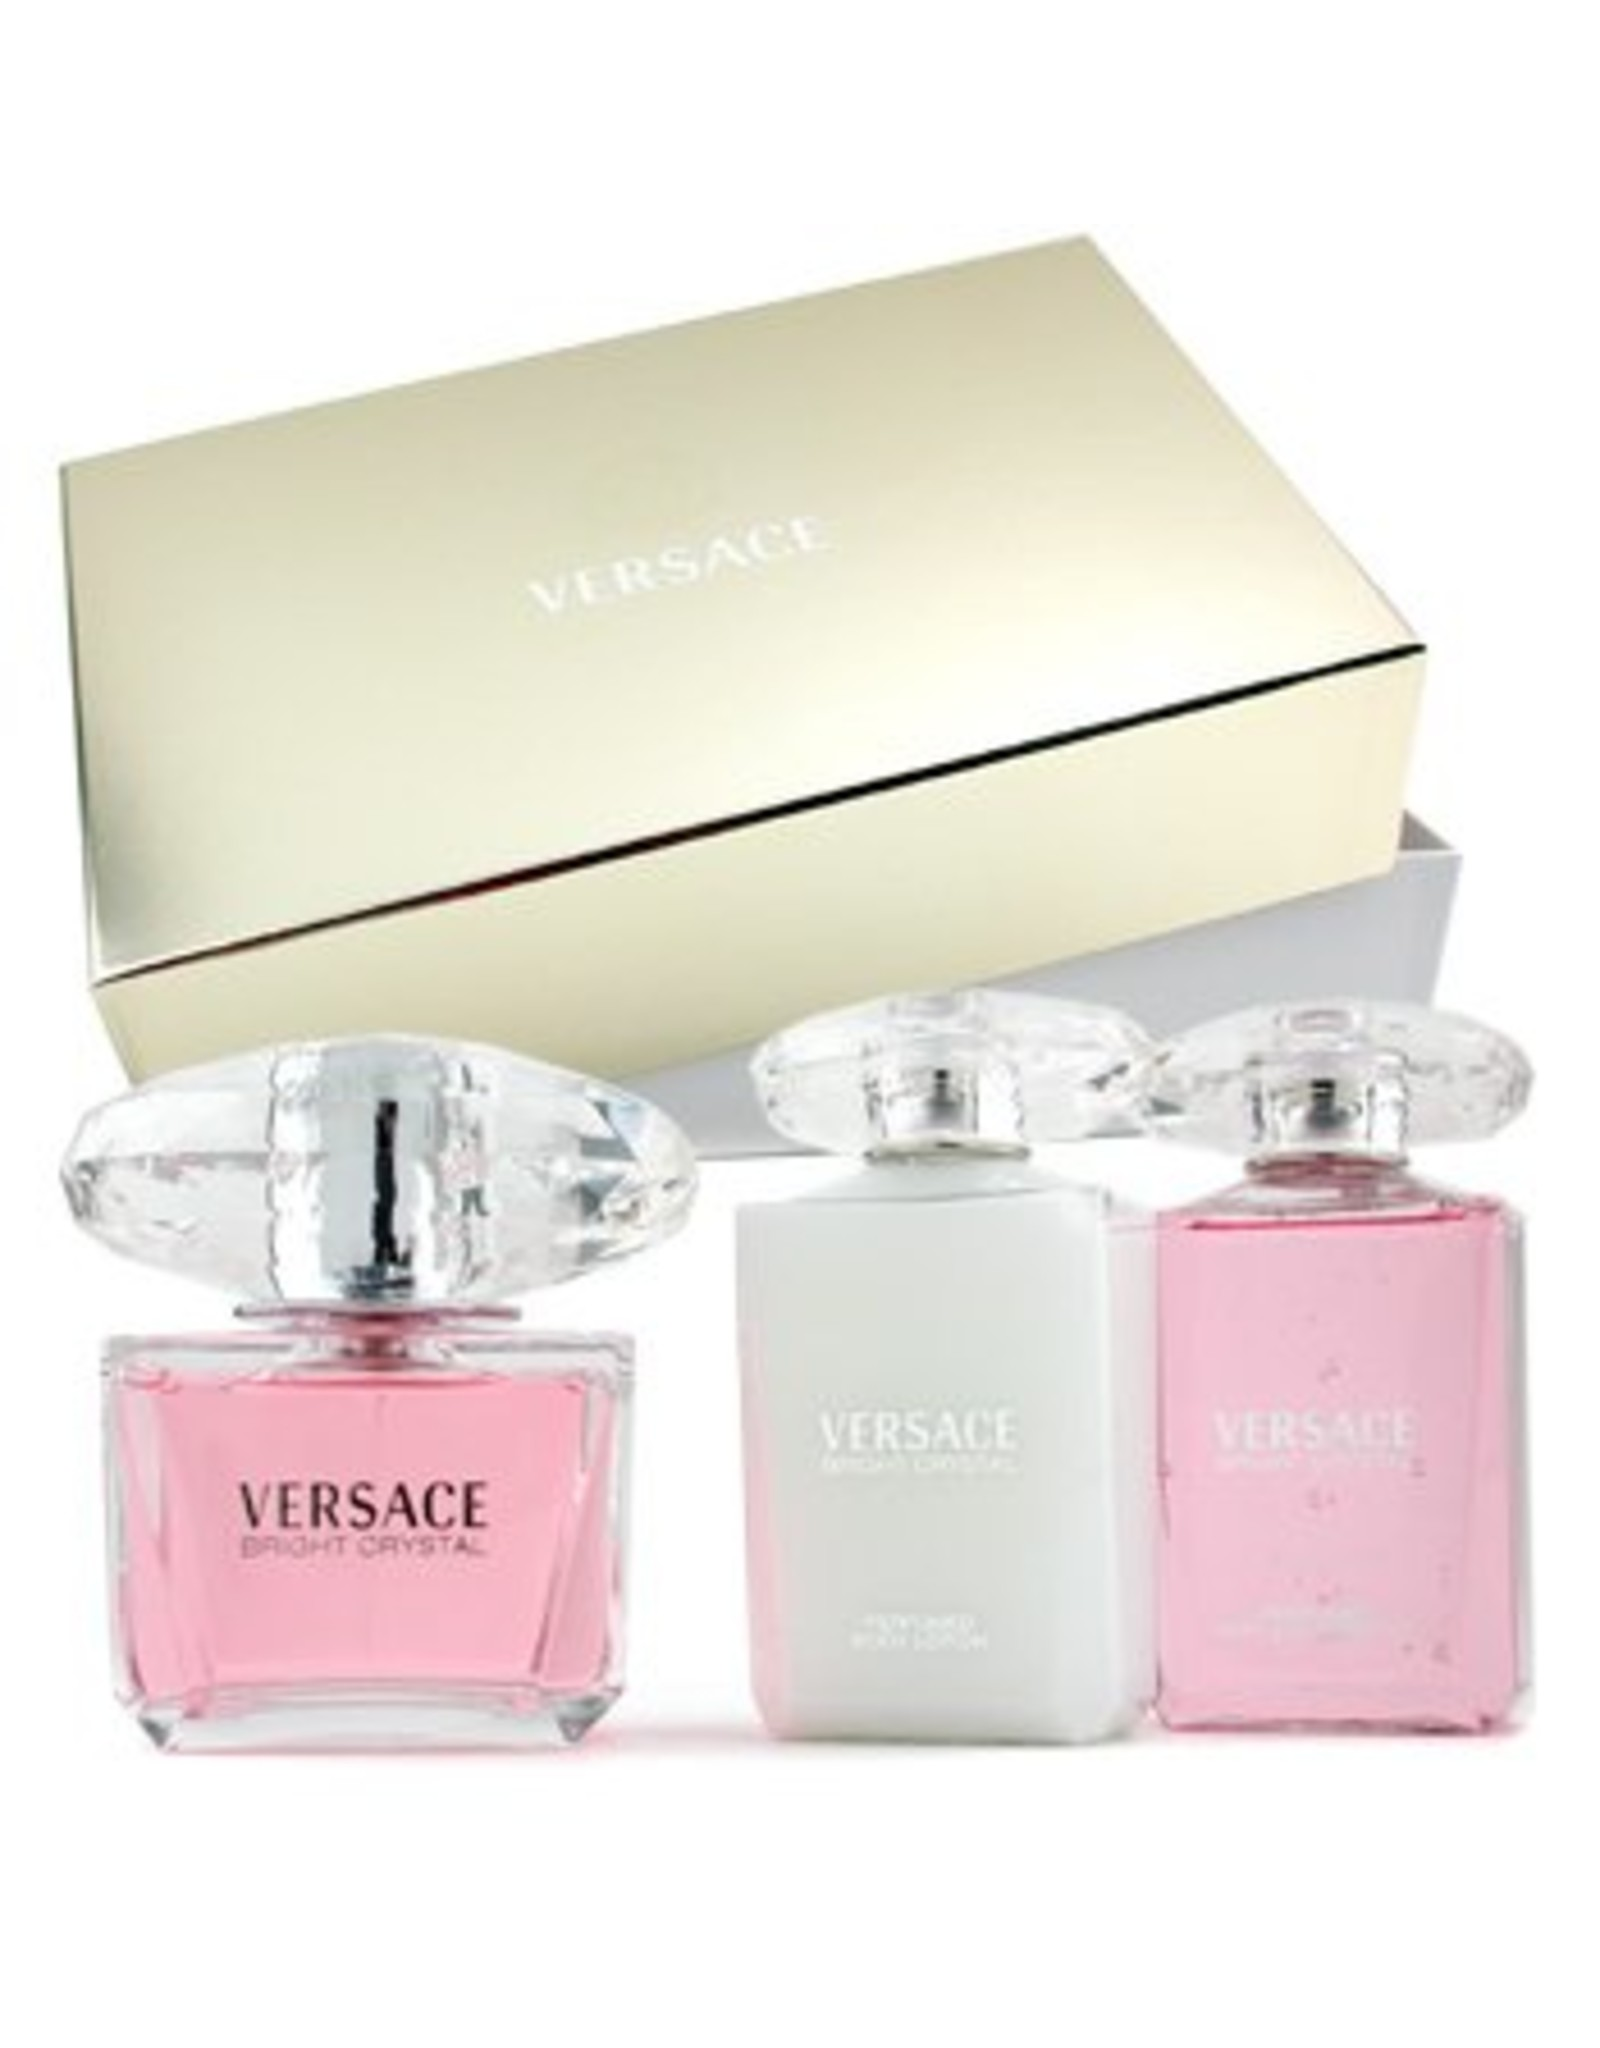 Giftset 'Bright Crystal' Versace - Body & Soap